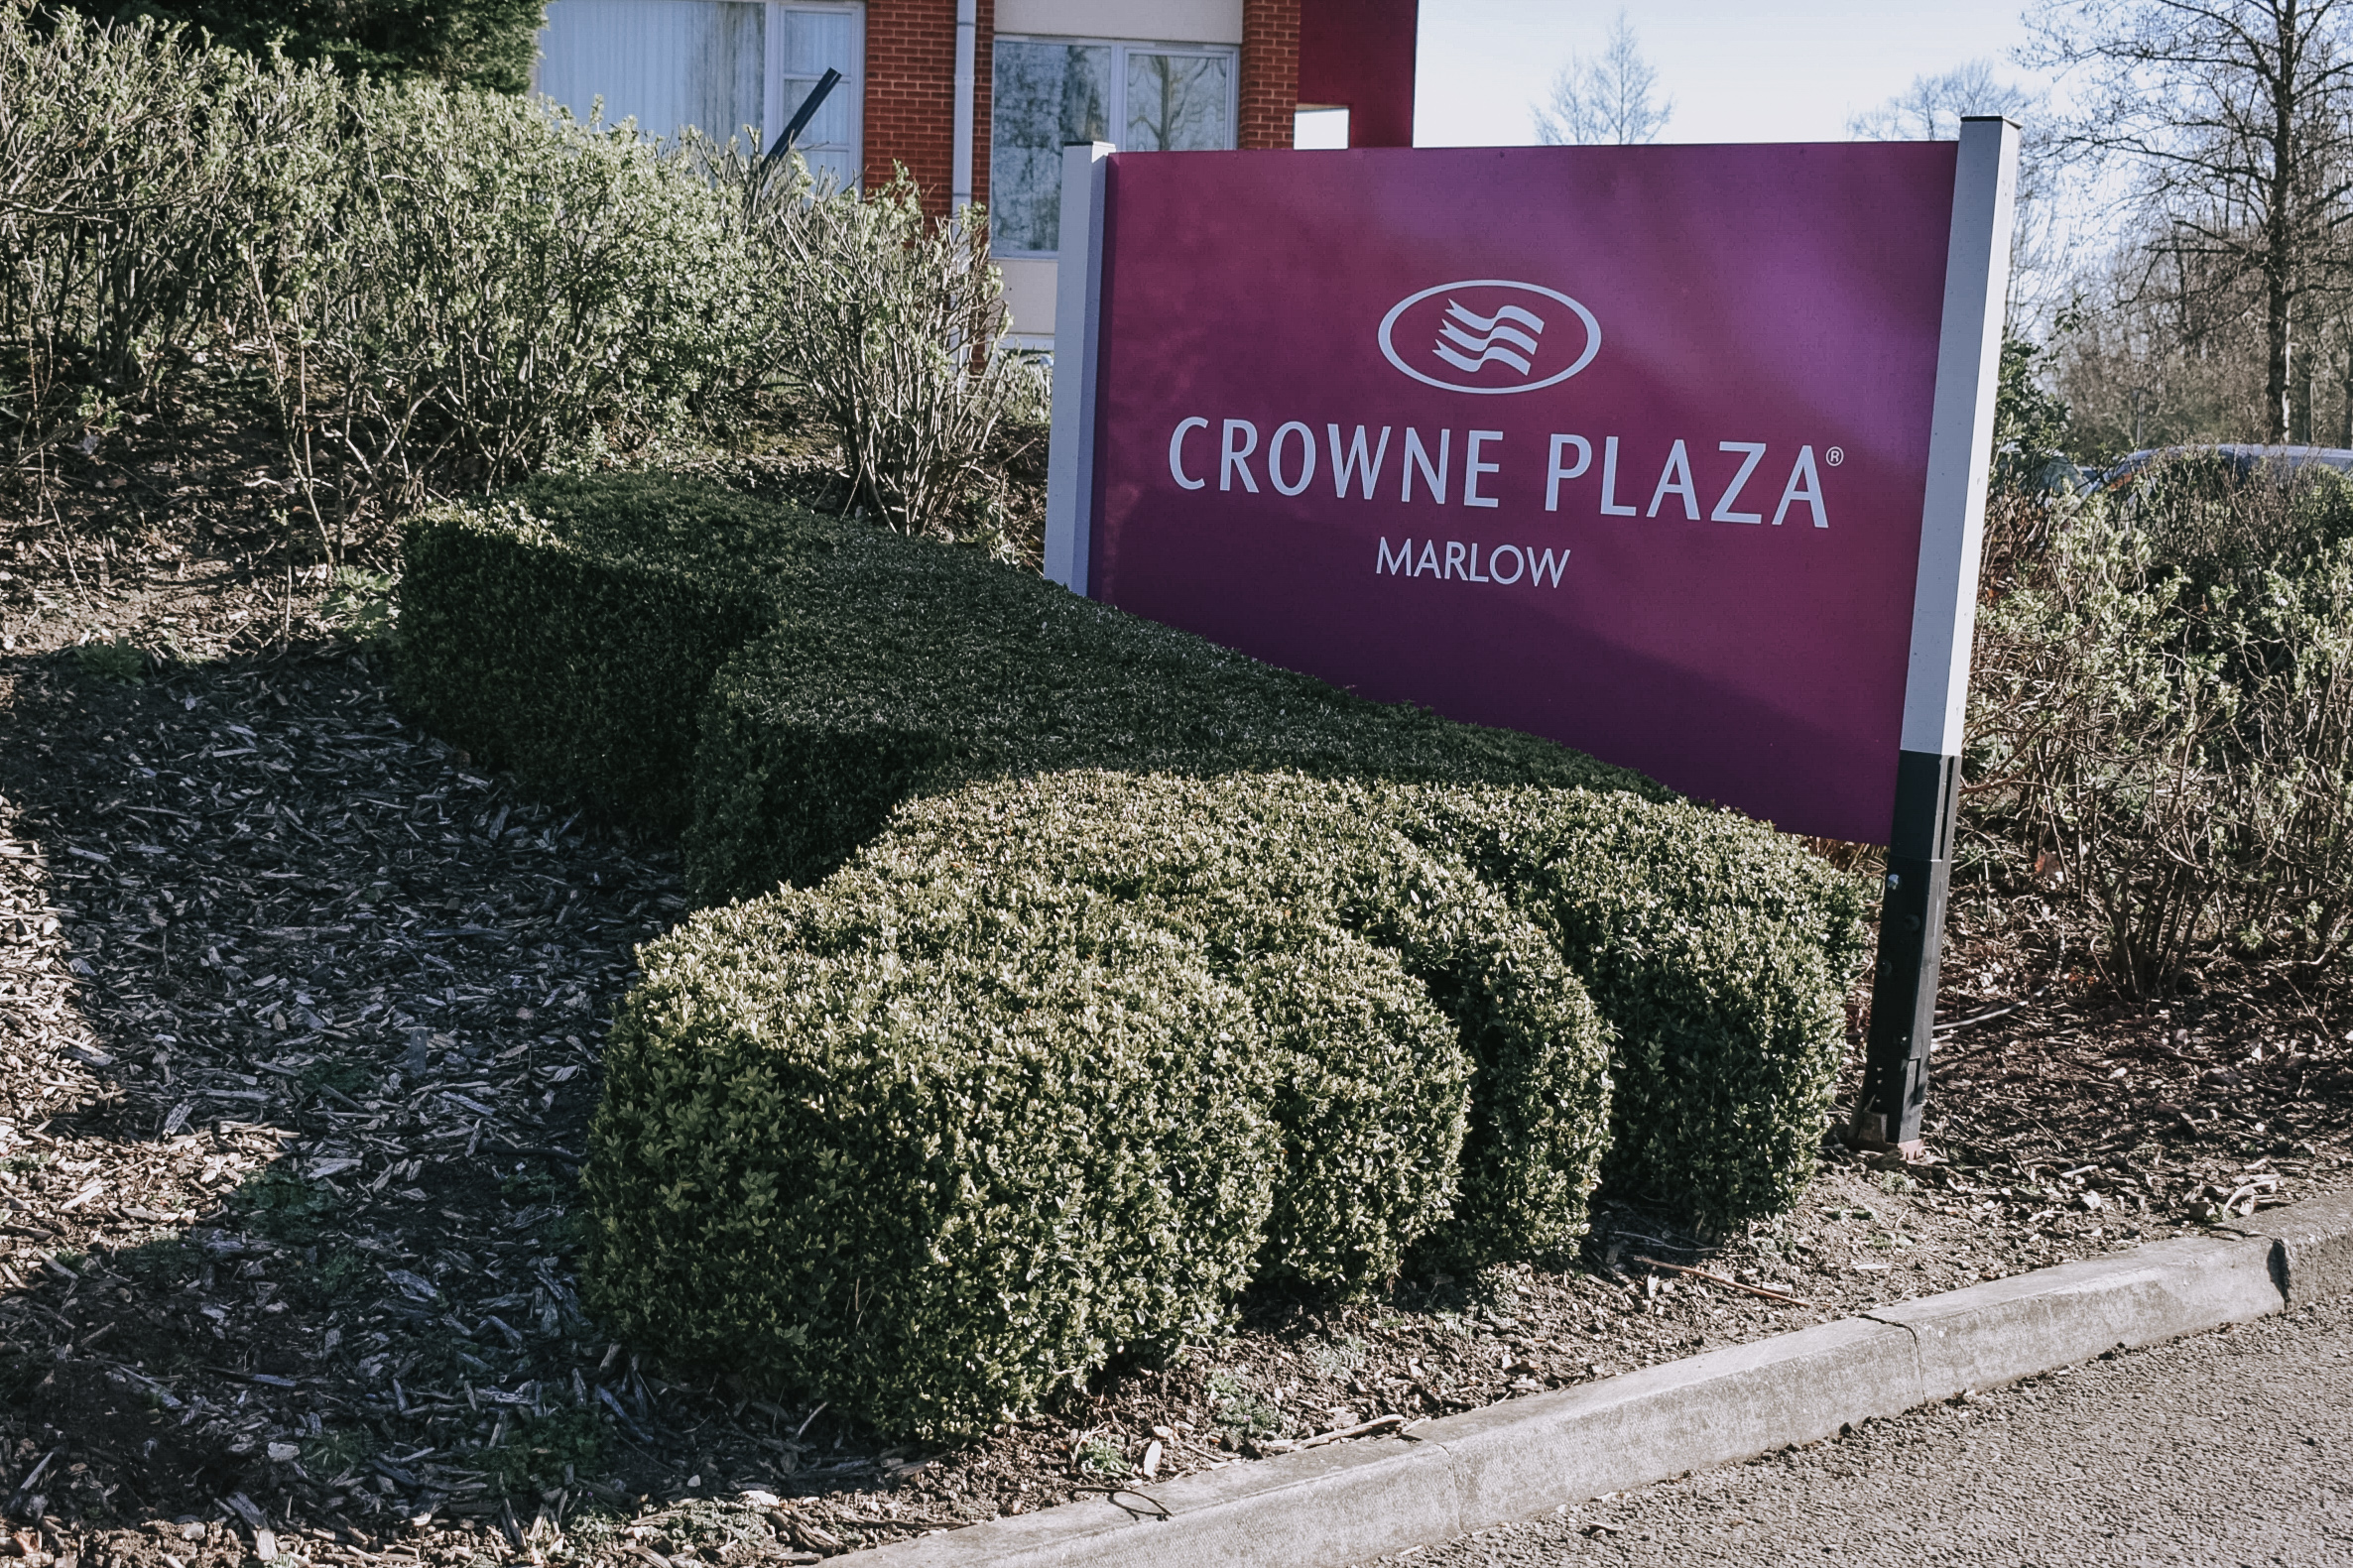 Buyagift voucher: Crowne Plaza Marlow spa day and afternoon tea for two